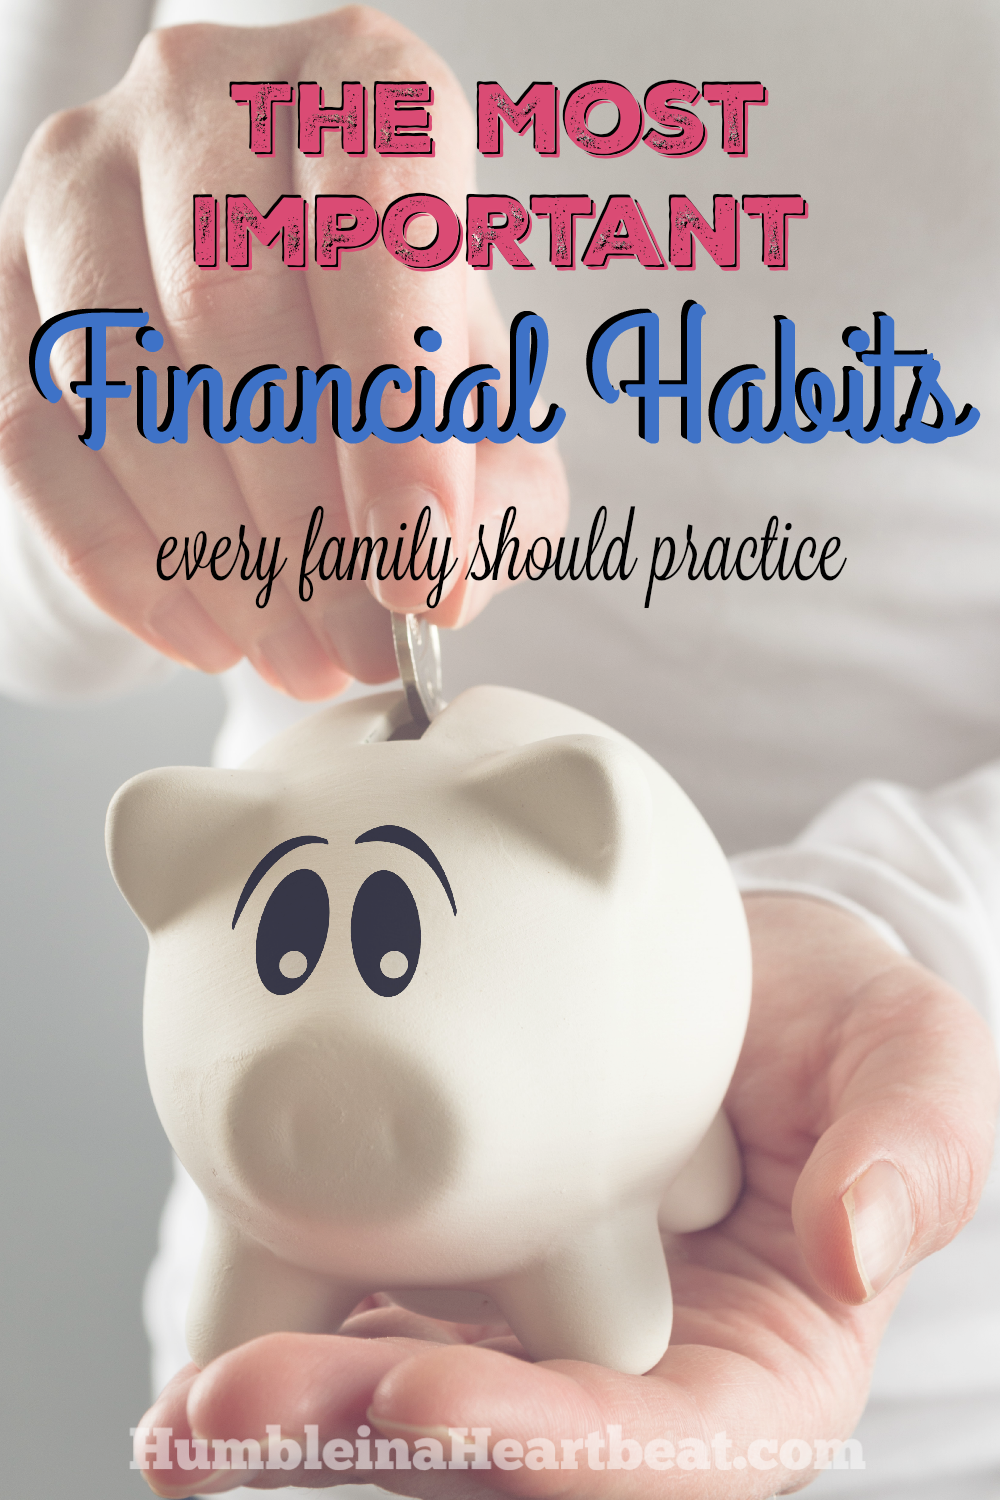 Your financial habits, good and bad, determine the outcome of your financial picture. These financial habits are especially important for families to practice so they are making the most of all their resources.